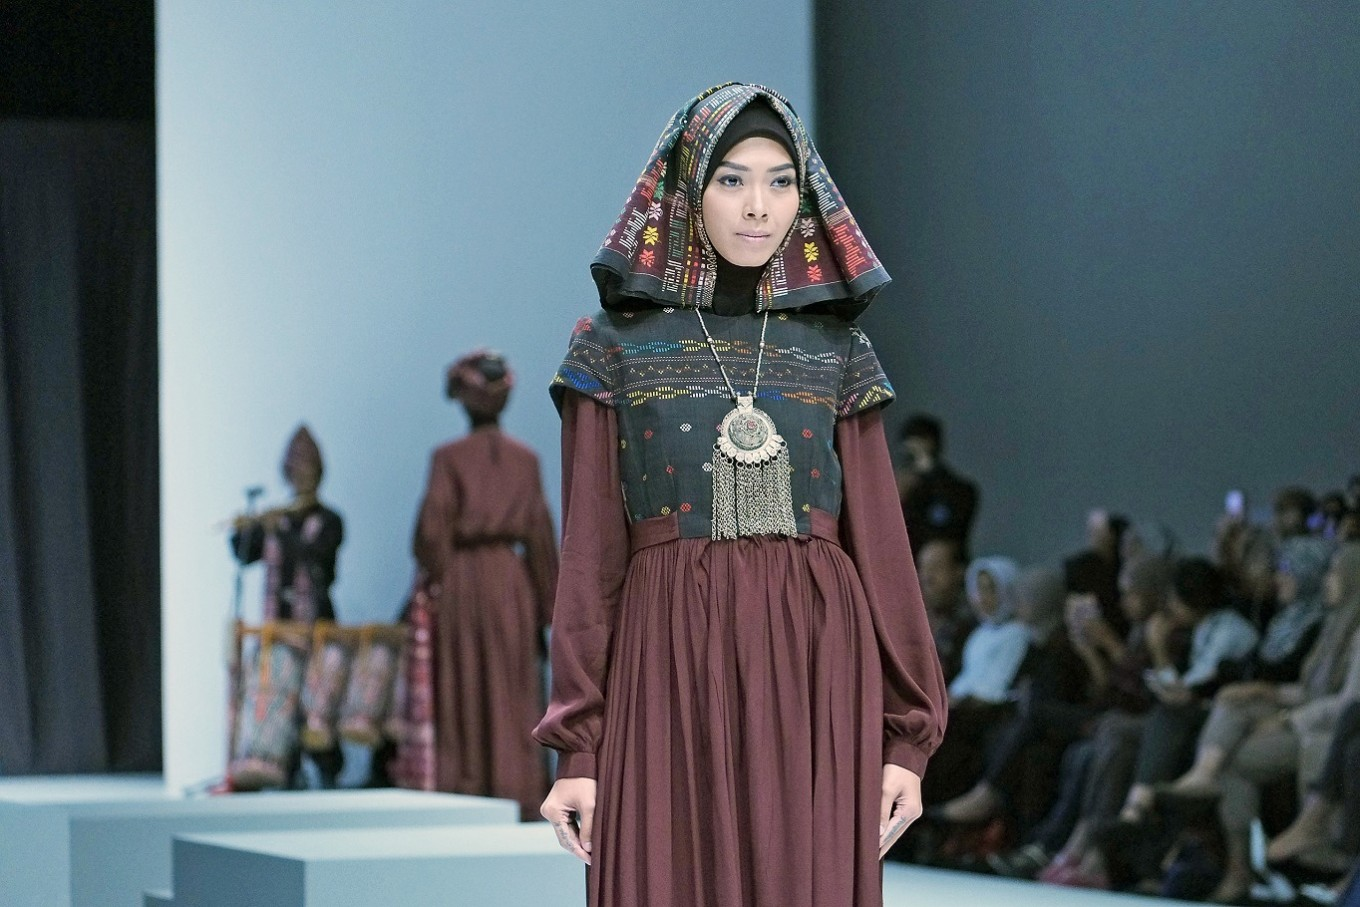 Indonesia Fashion Week aims to celebrate culture